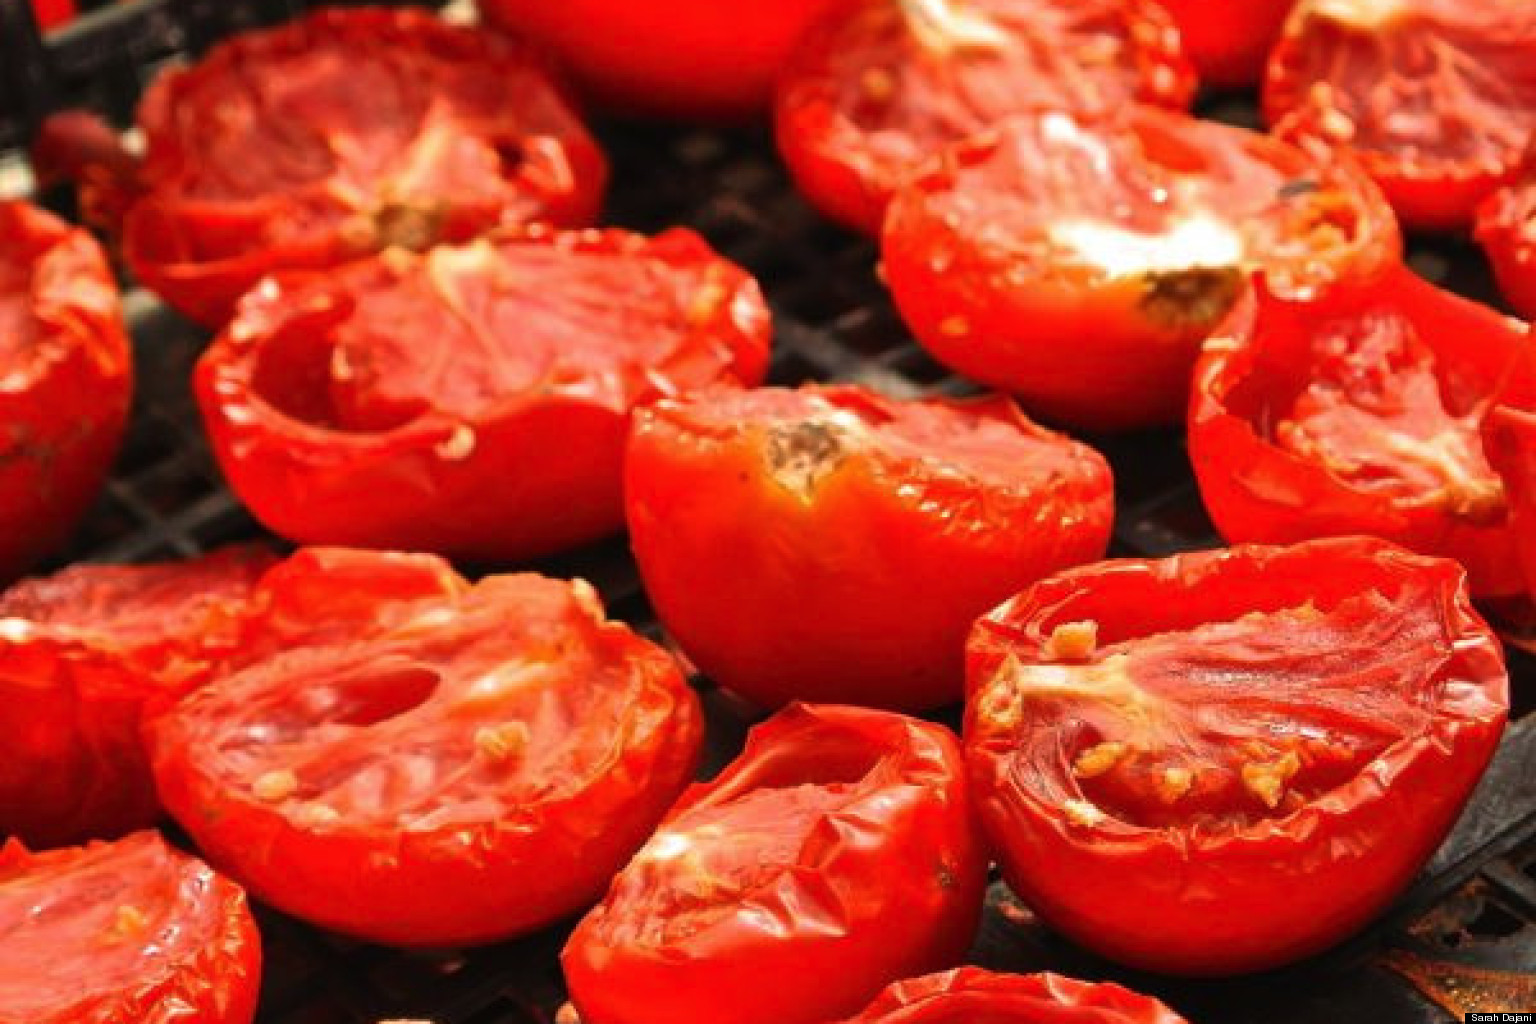 Sun dried tomatoes from the valley sunfruit in jordan huffpost - Make sun dried tomatoes explosion flavor ...